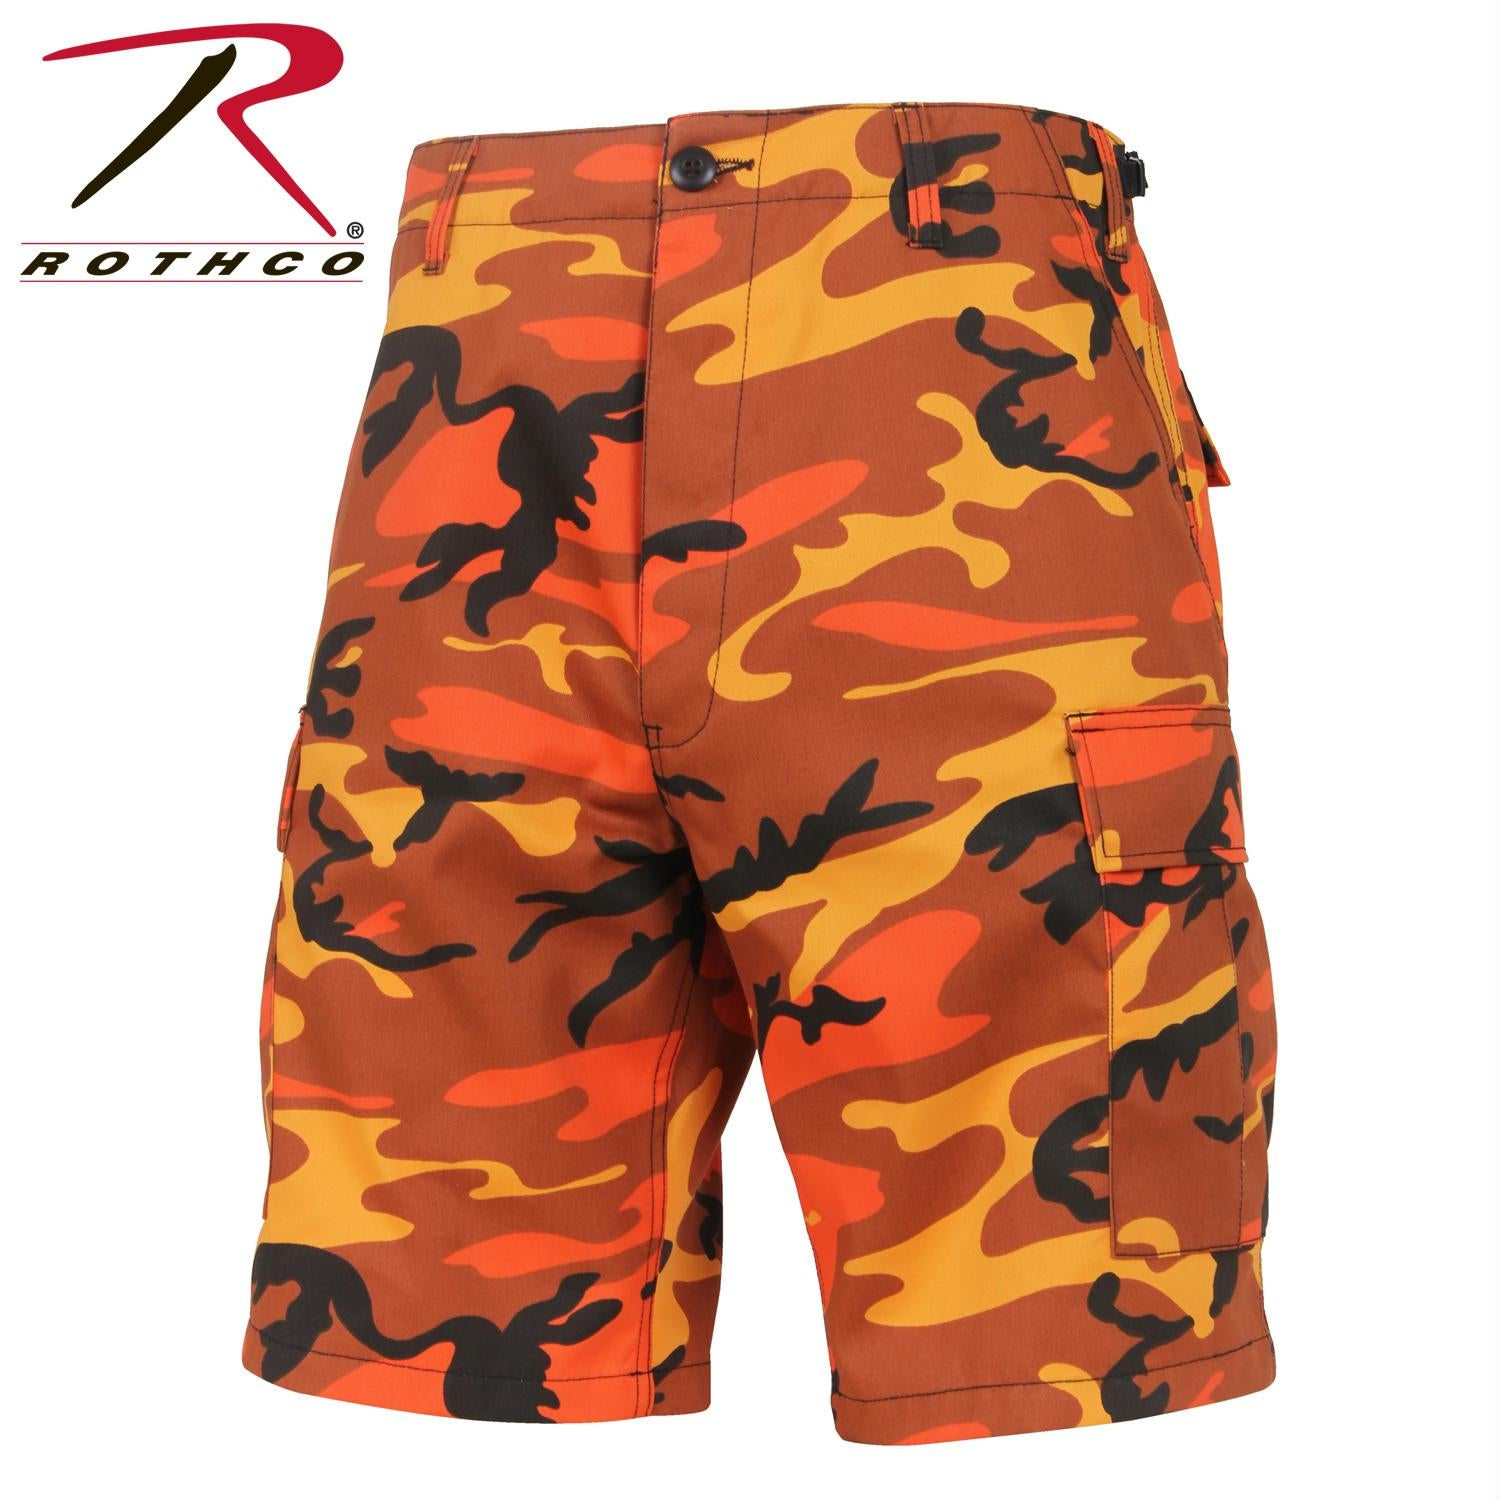 Rothco Colored Camo BDU Shorts - Savage Orange Camo / S